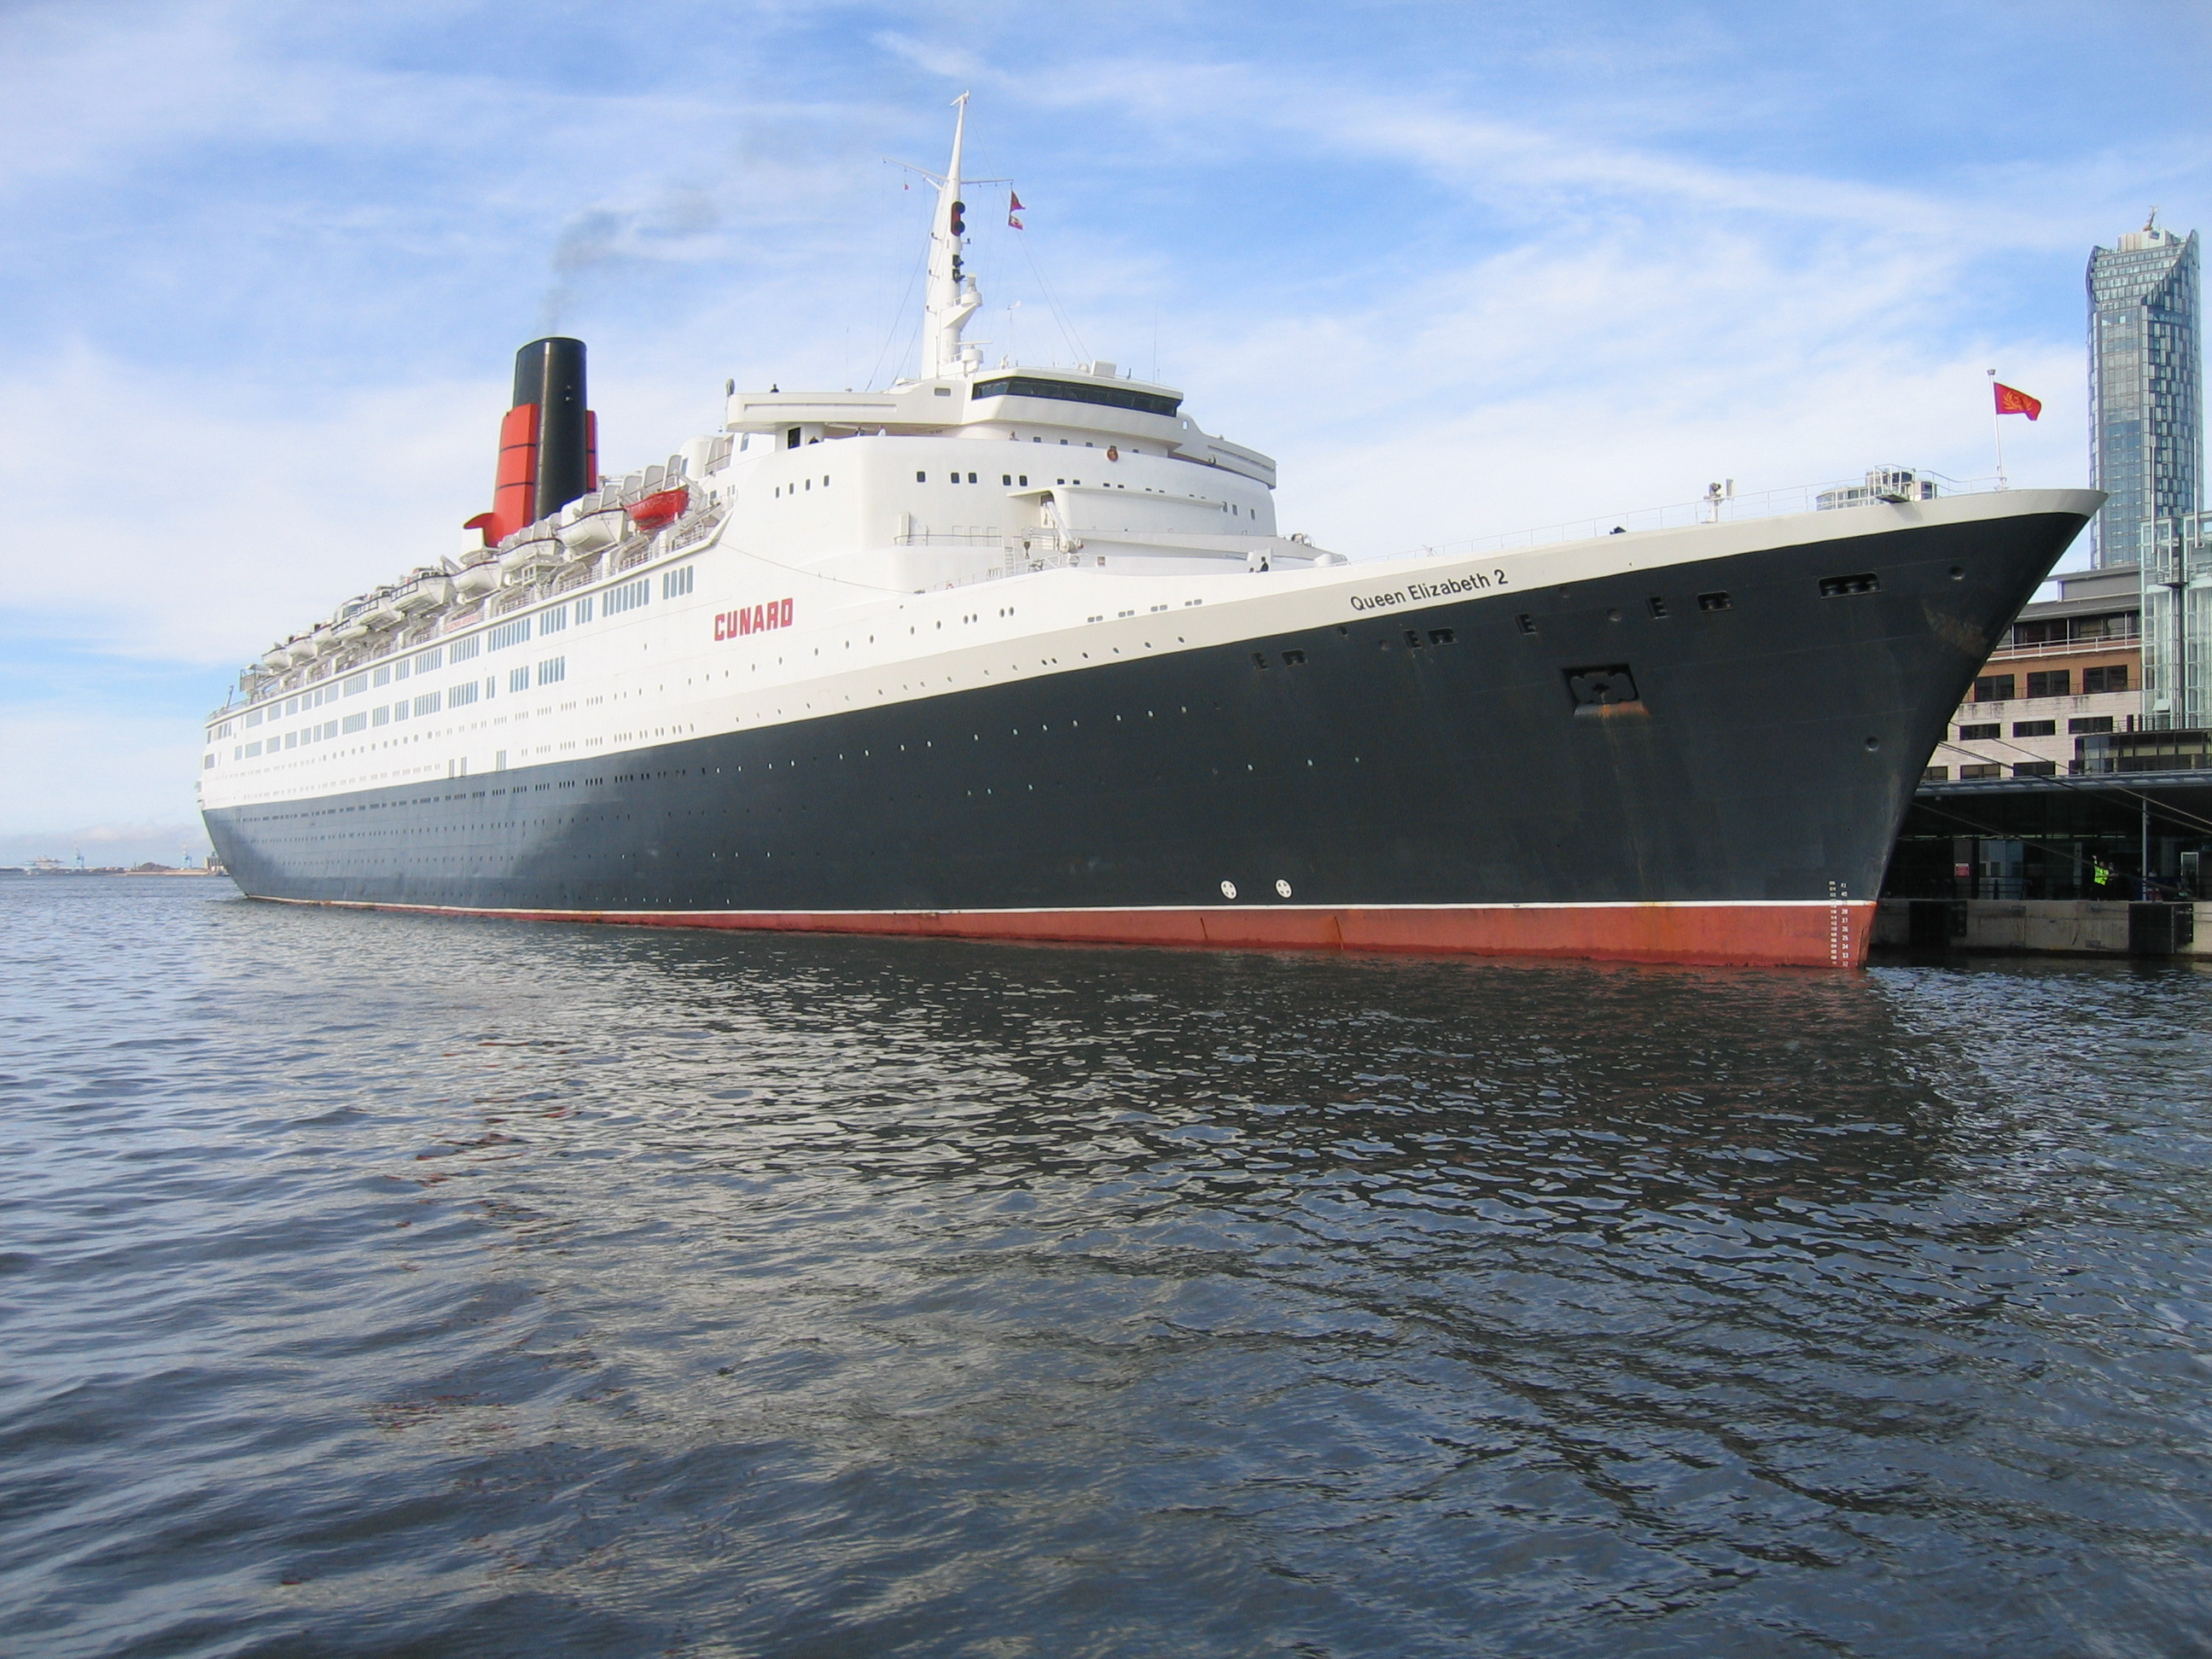 Worksheets Famous Ocean Liner Math Worksheet Answers famous ocean liner math worksheet answers children s books about sharebrowse answers